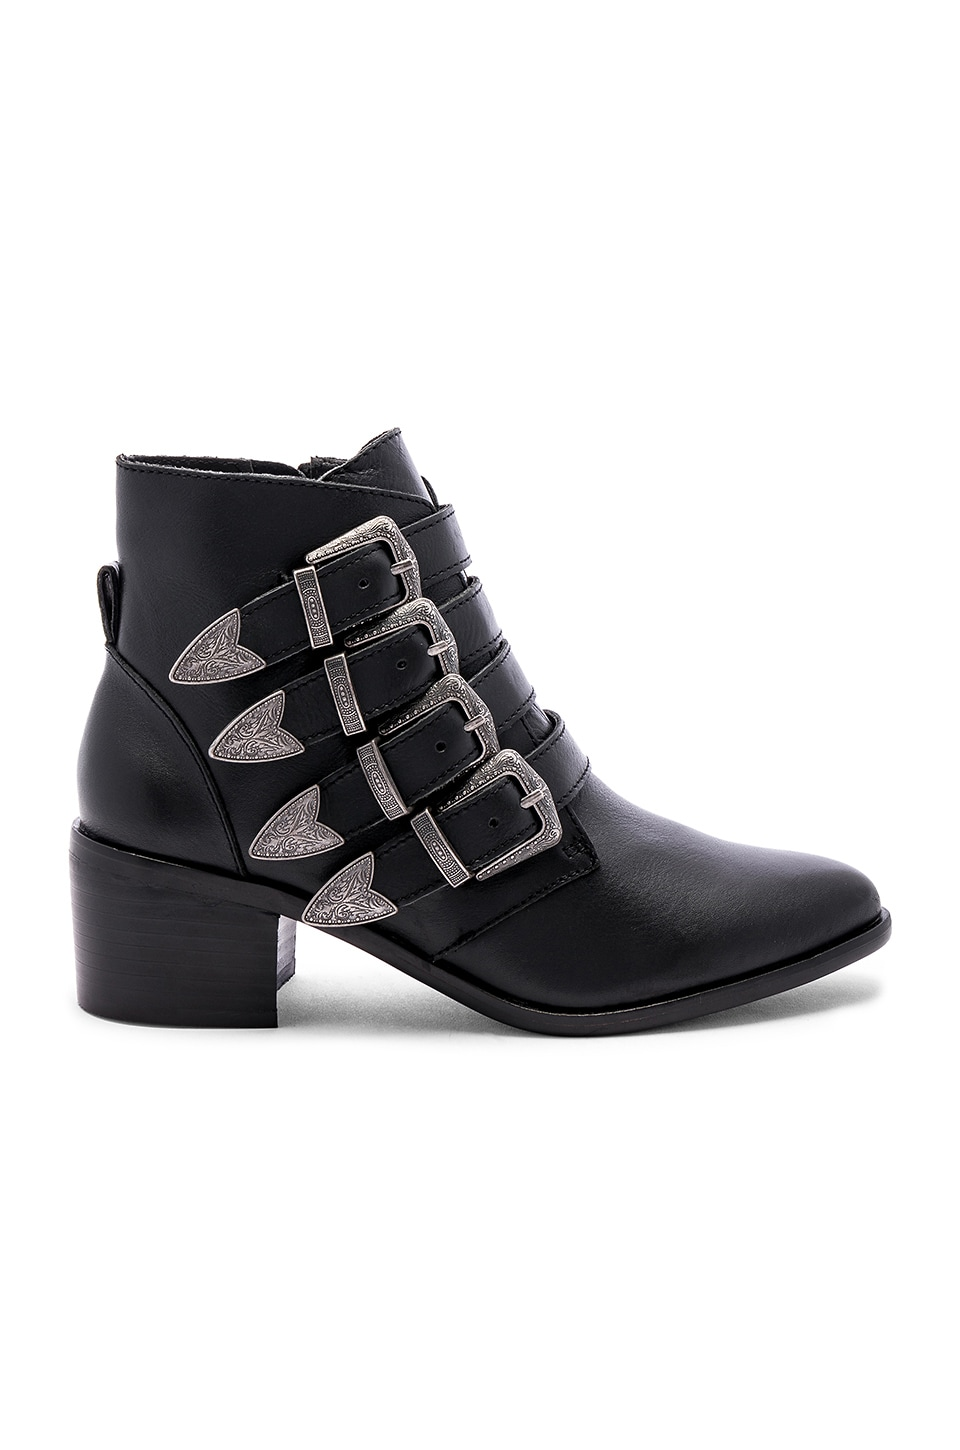 3e0428b018c Steve Madden Billey Bootie in Black Leather | REVOLVE